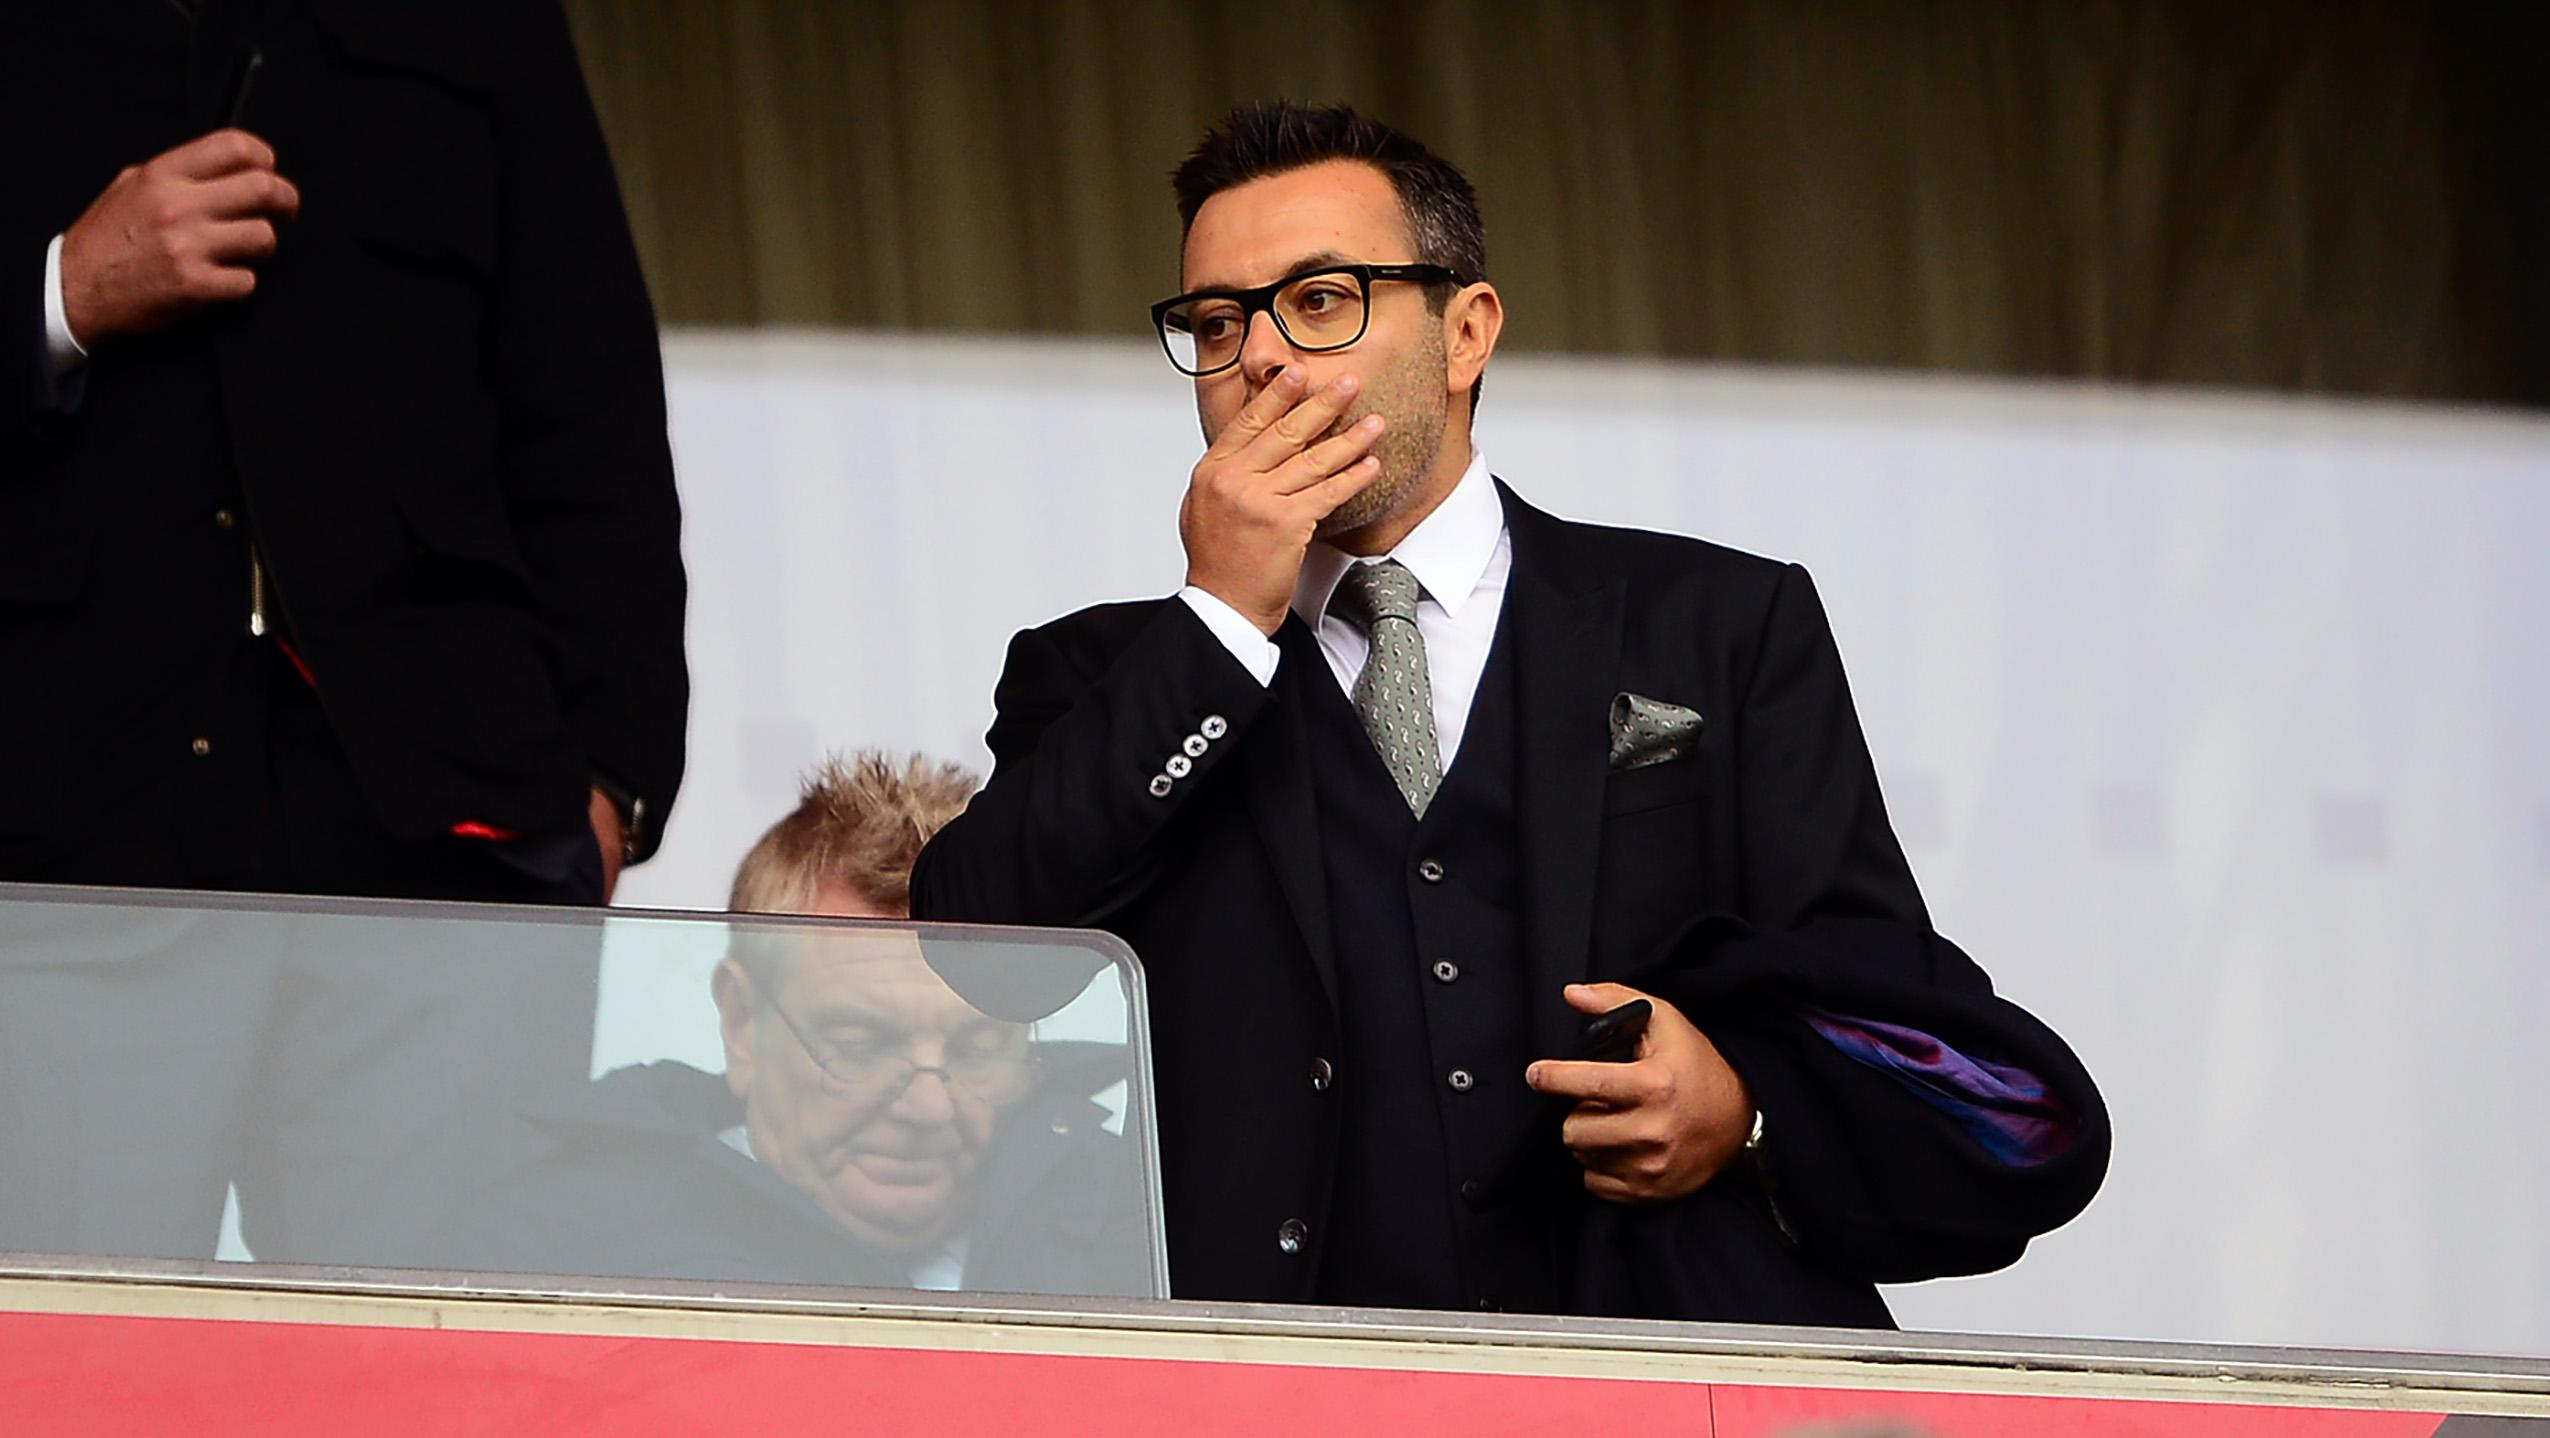 Andrea Radrizzani is the owner of the company